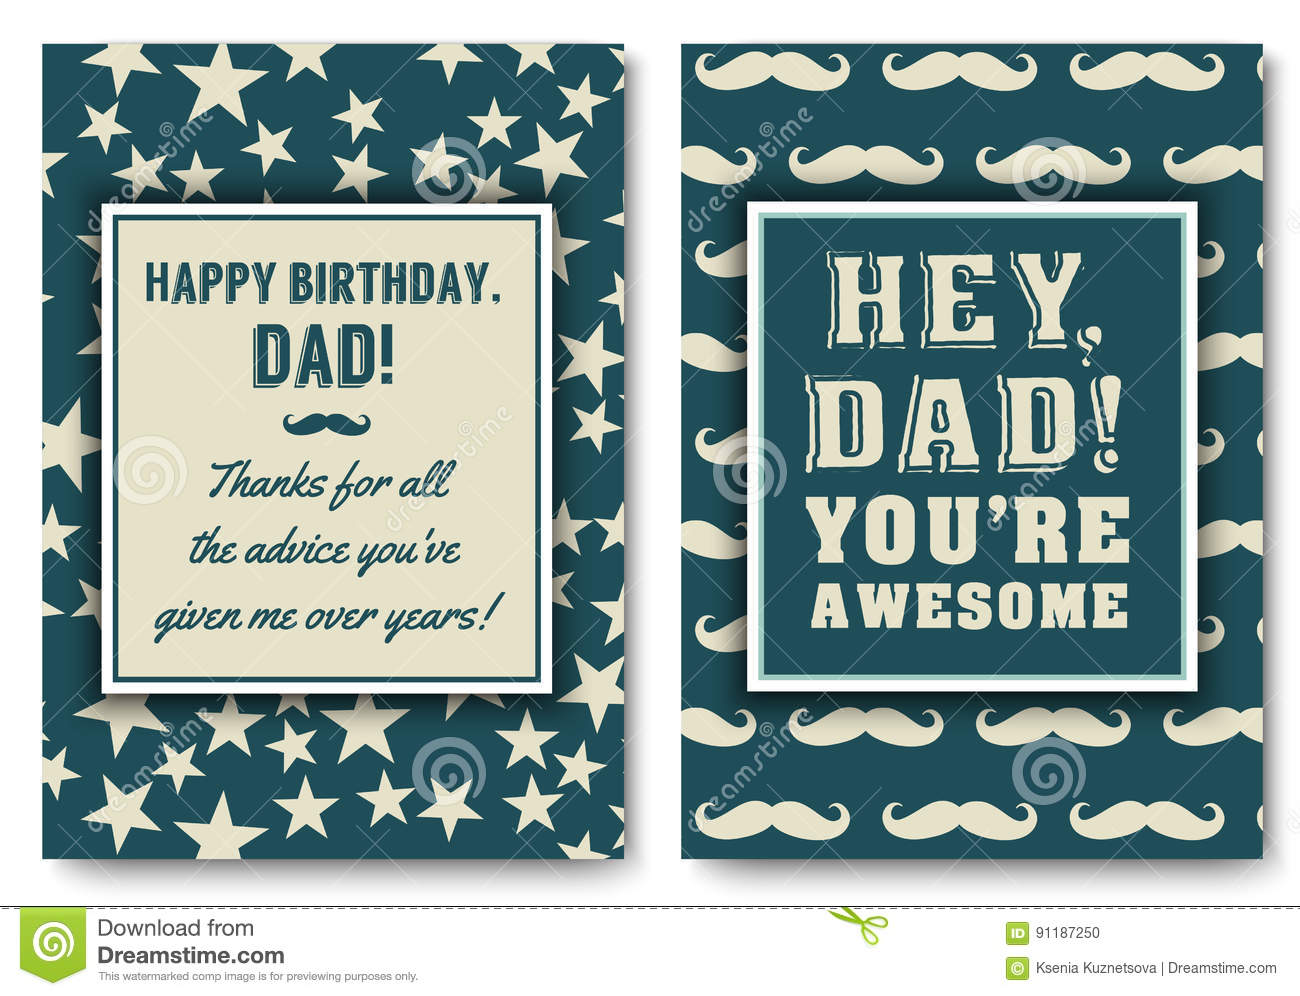 Dad Birthday Card With Words Of Love